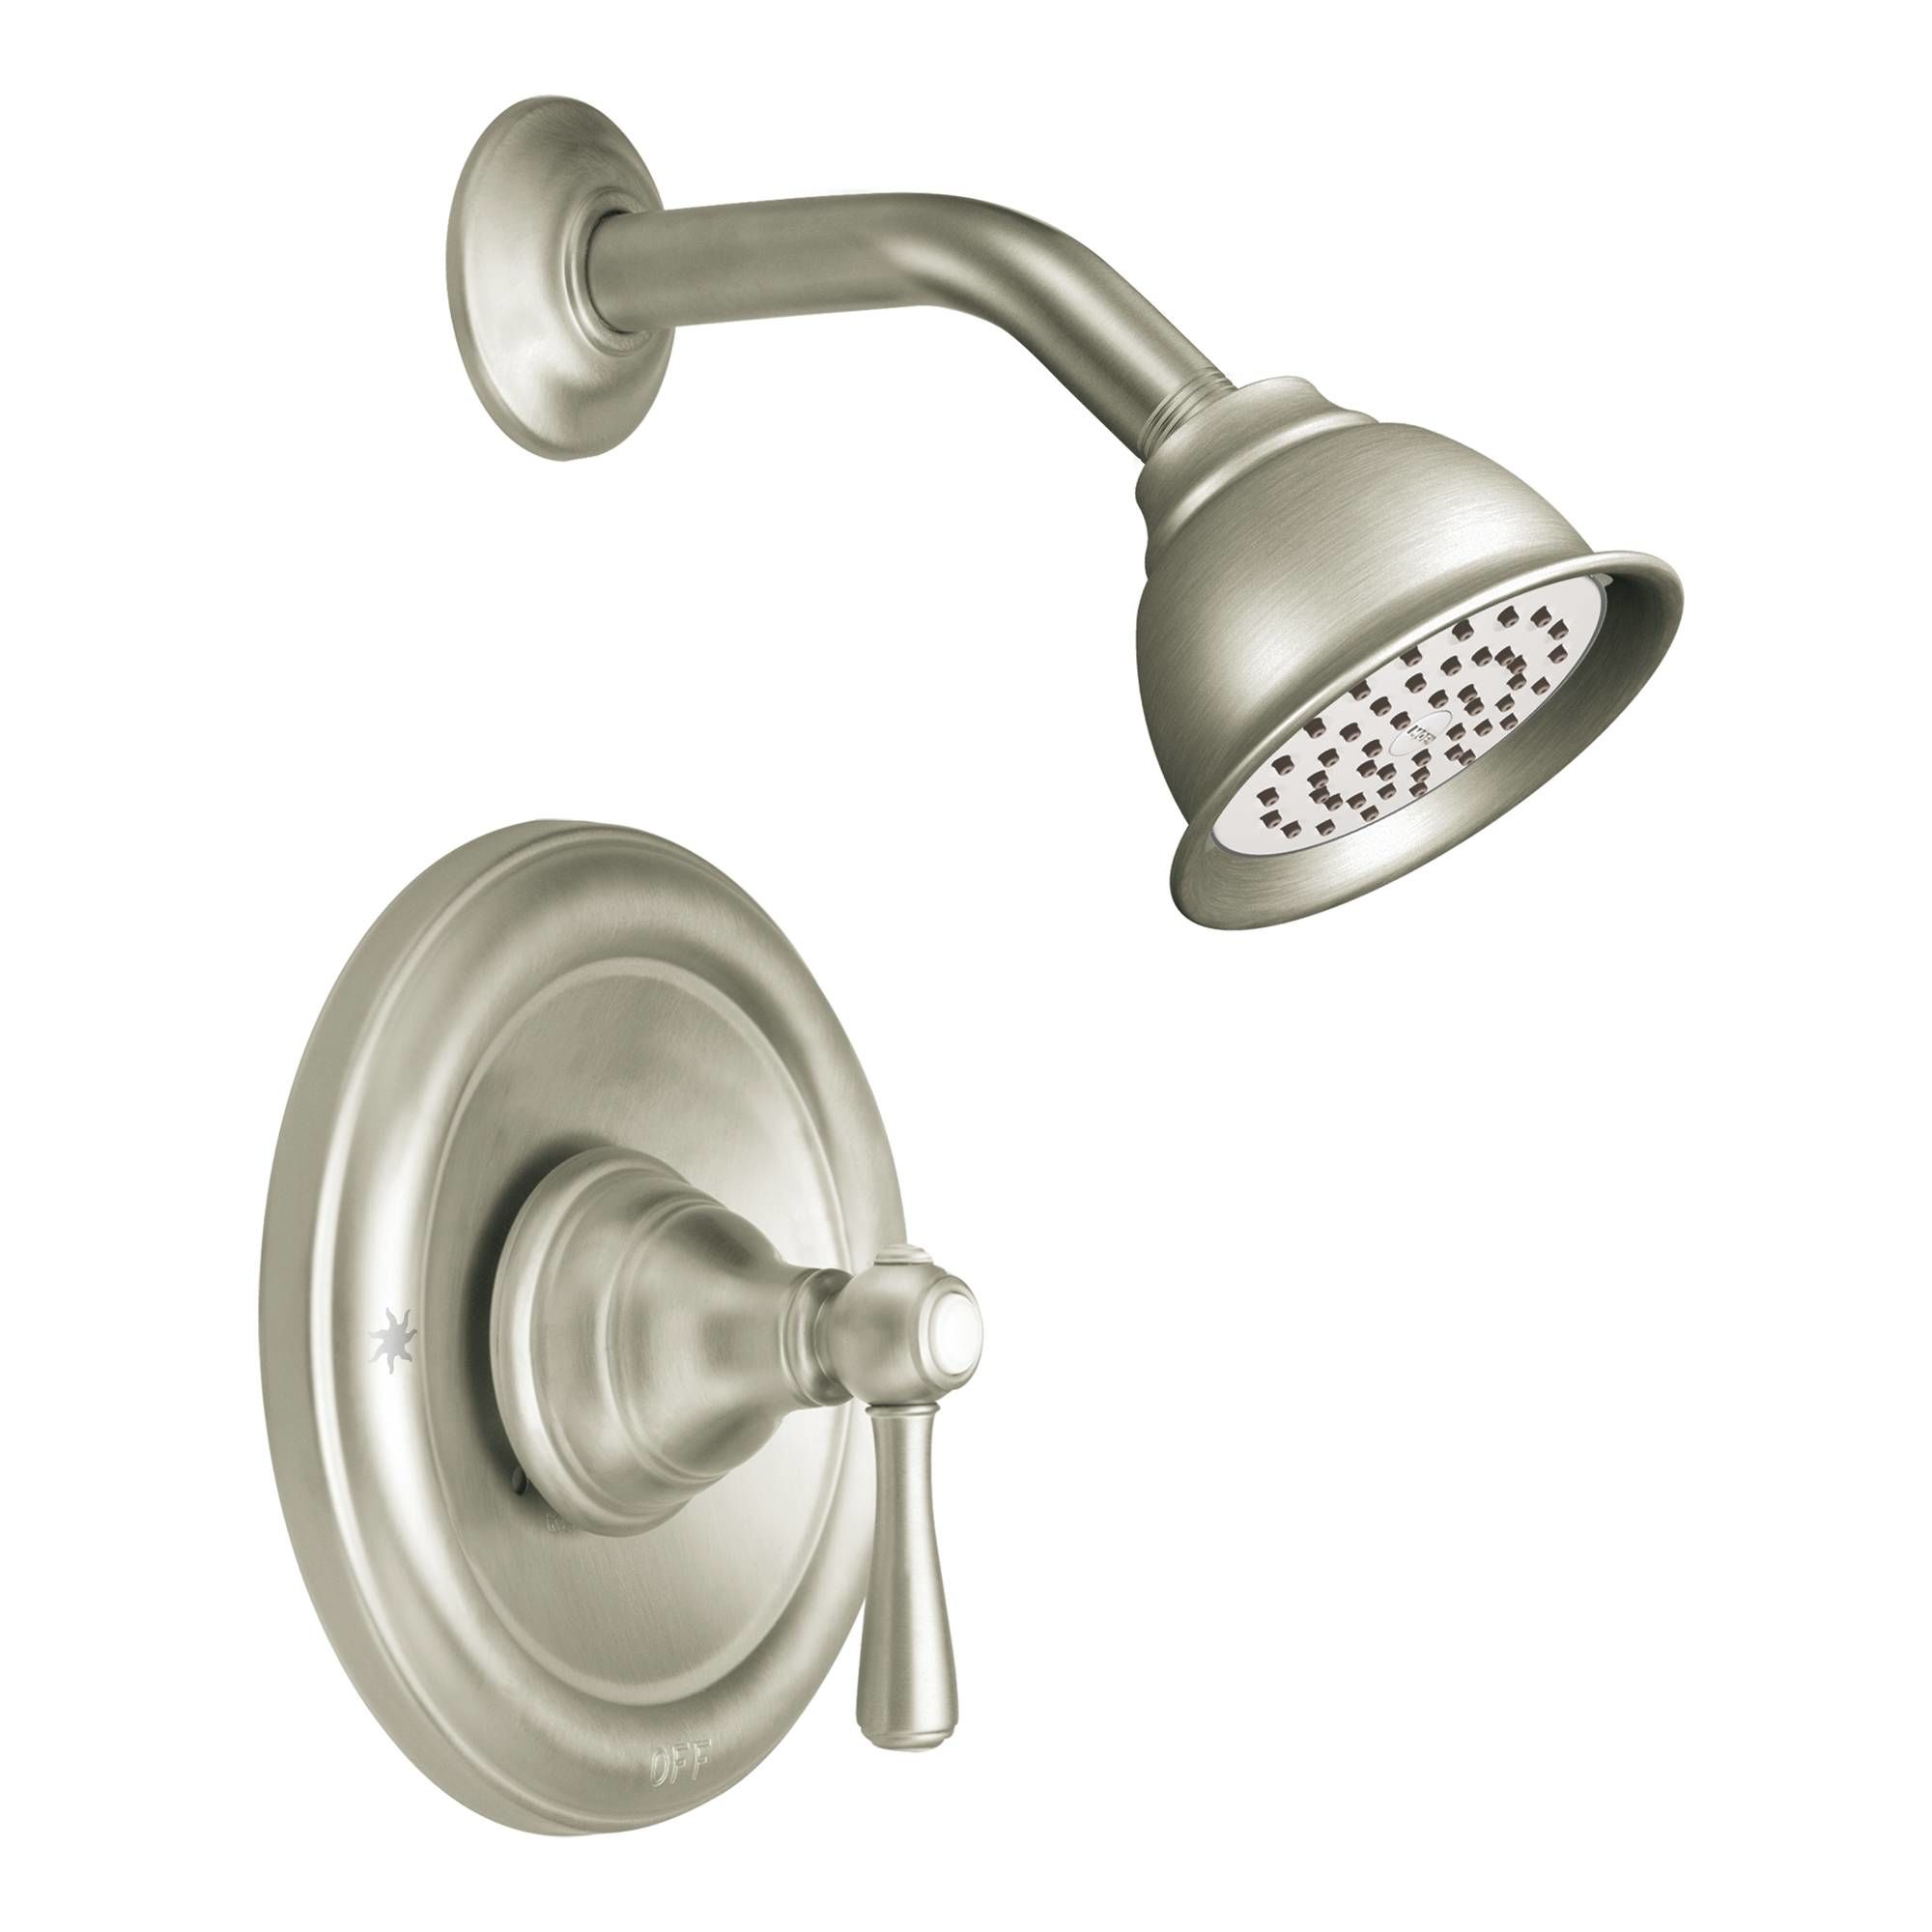 Moen 525ORB Oil Rubbed Bronze Pressure Balanced Shower System With Shower  Head, Diverter, And Hand Shower From The Kingsley Collection (Valves  Included) ...